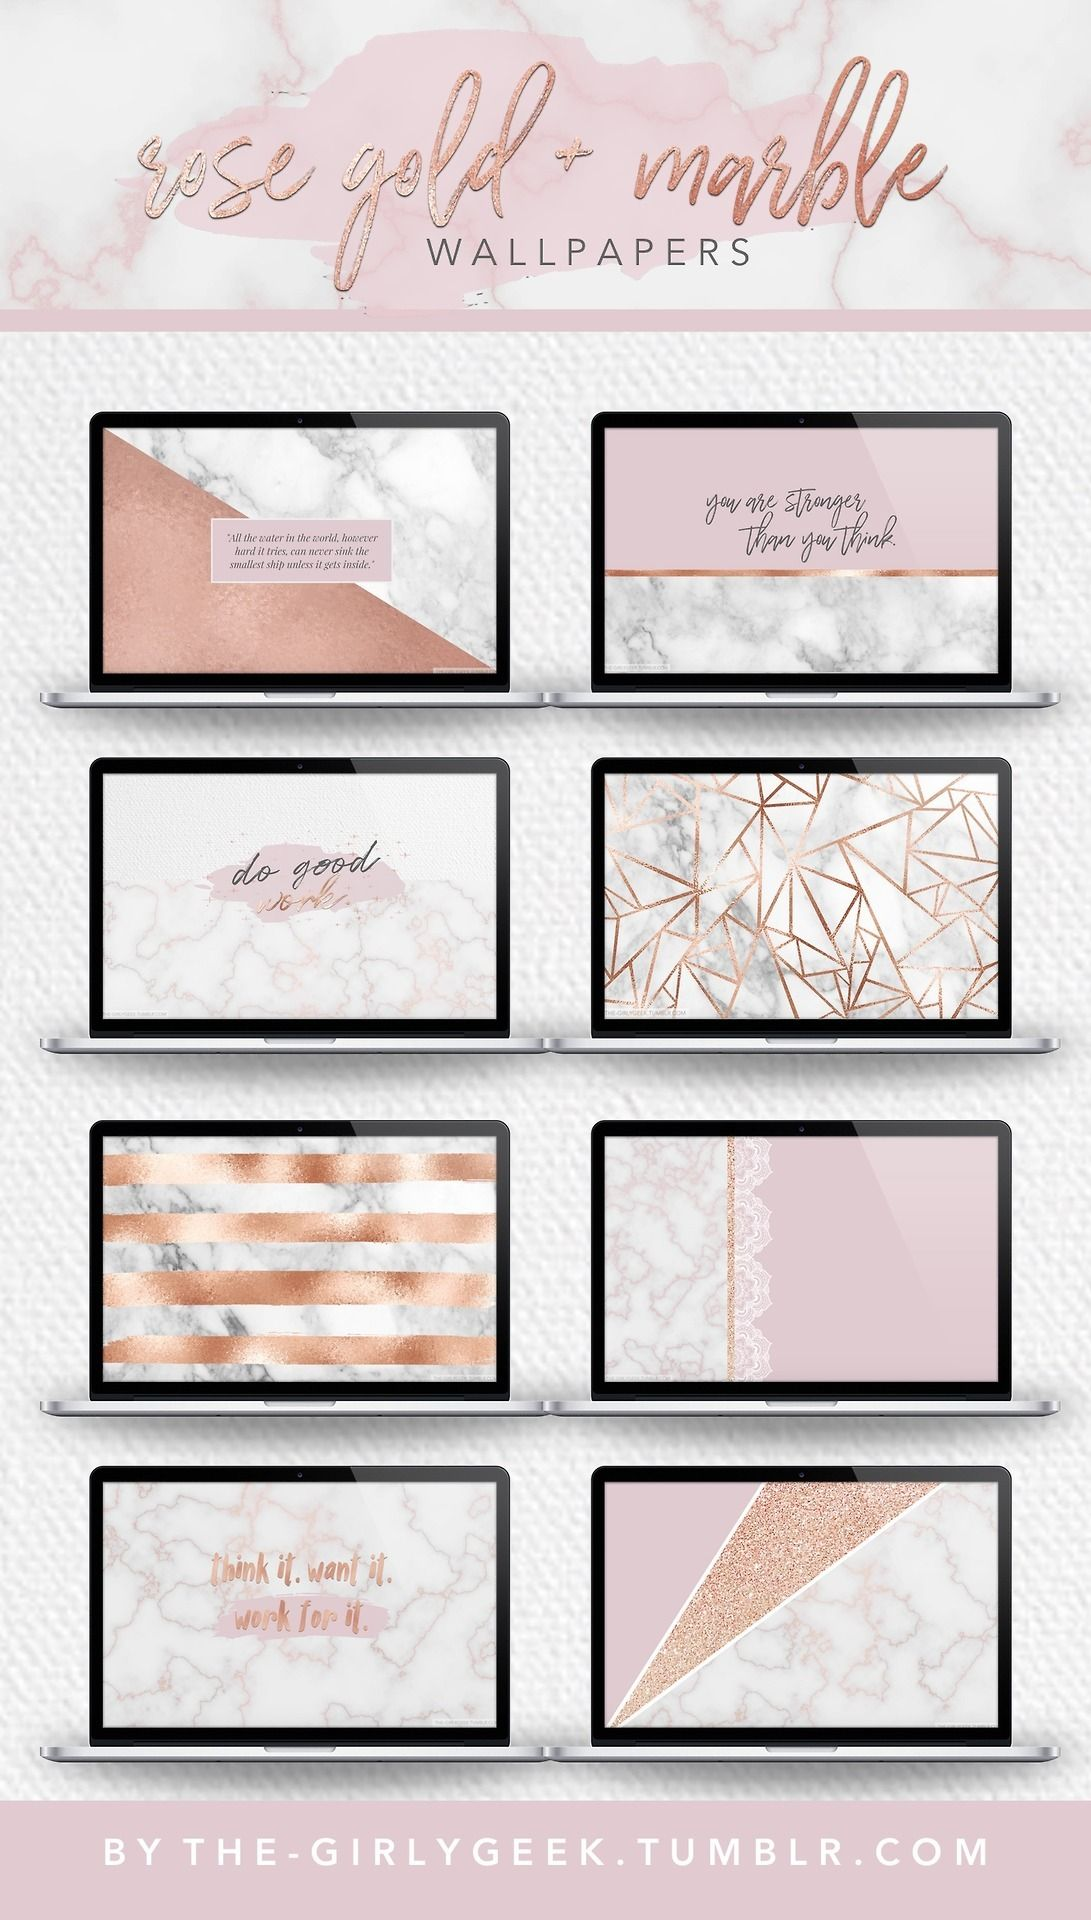 I had a few requests this week for some new marble and